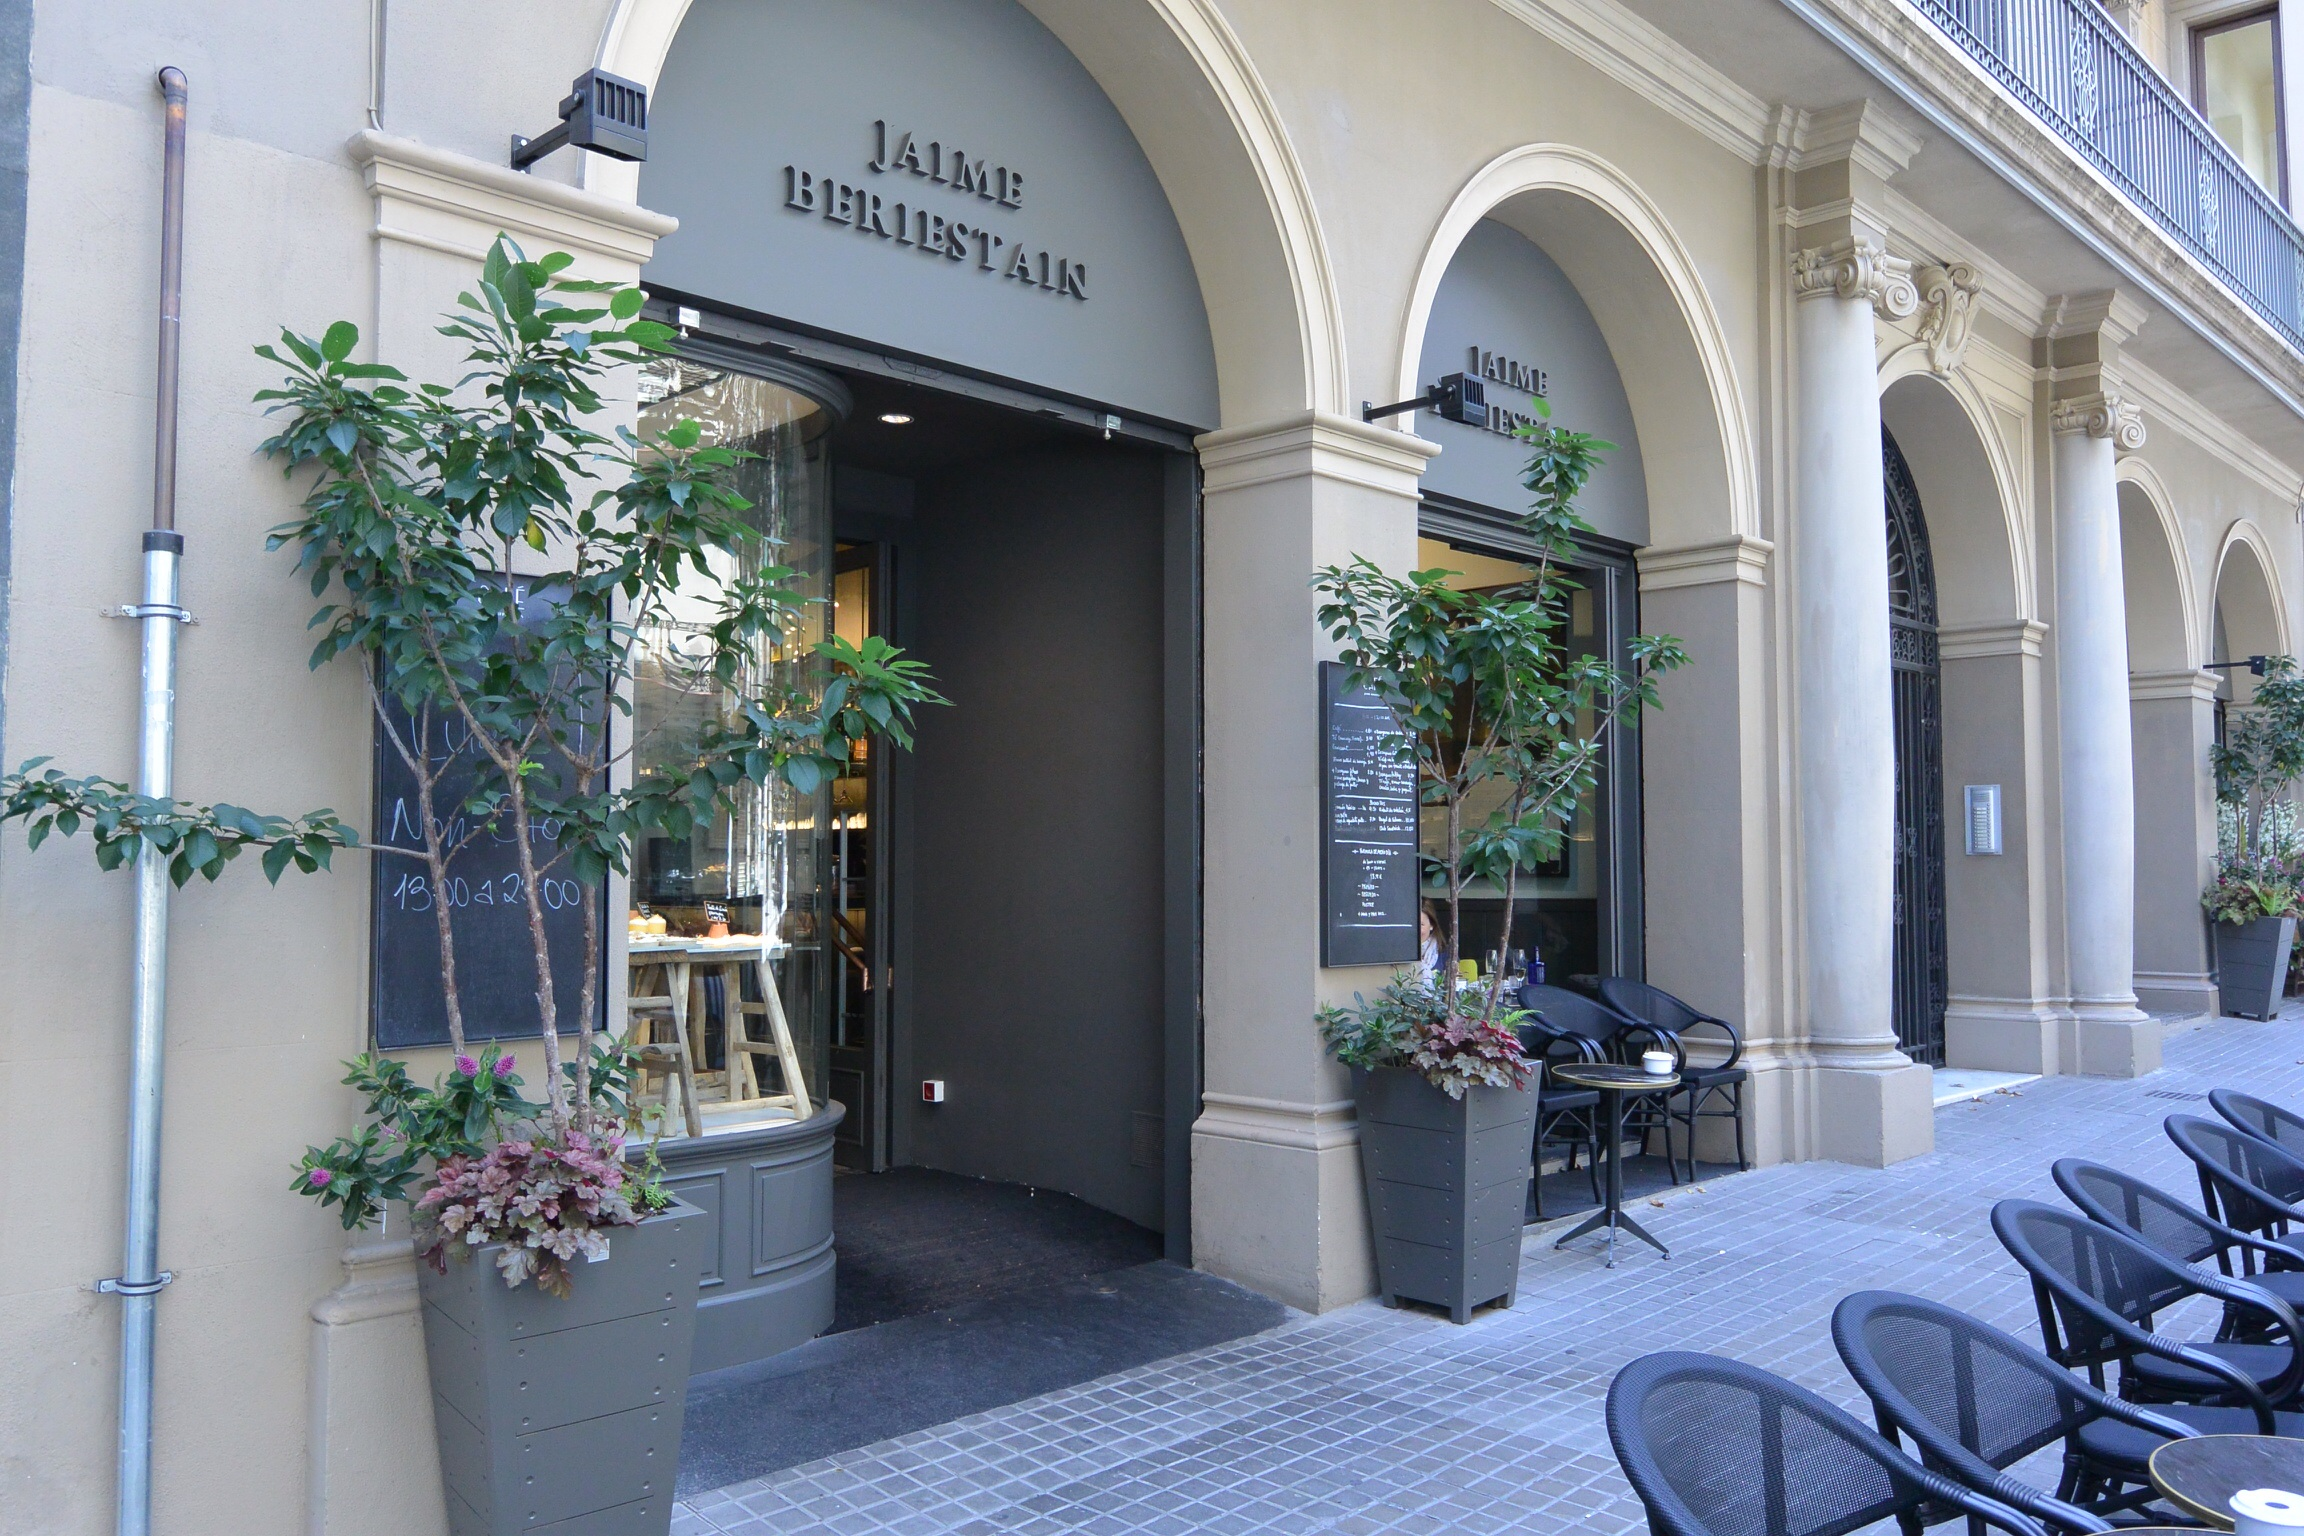 jaime beriestain restaurant barcelona spain